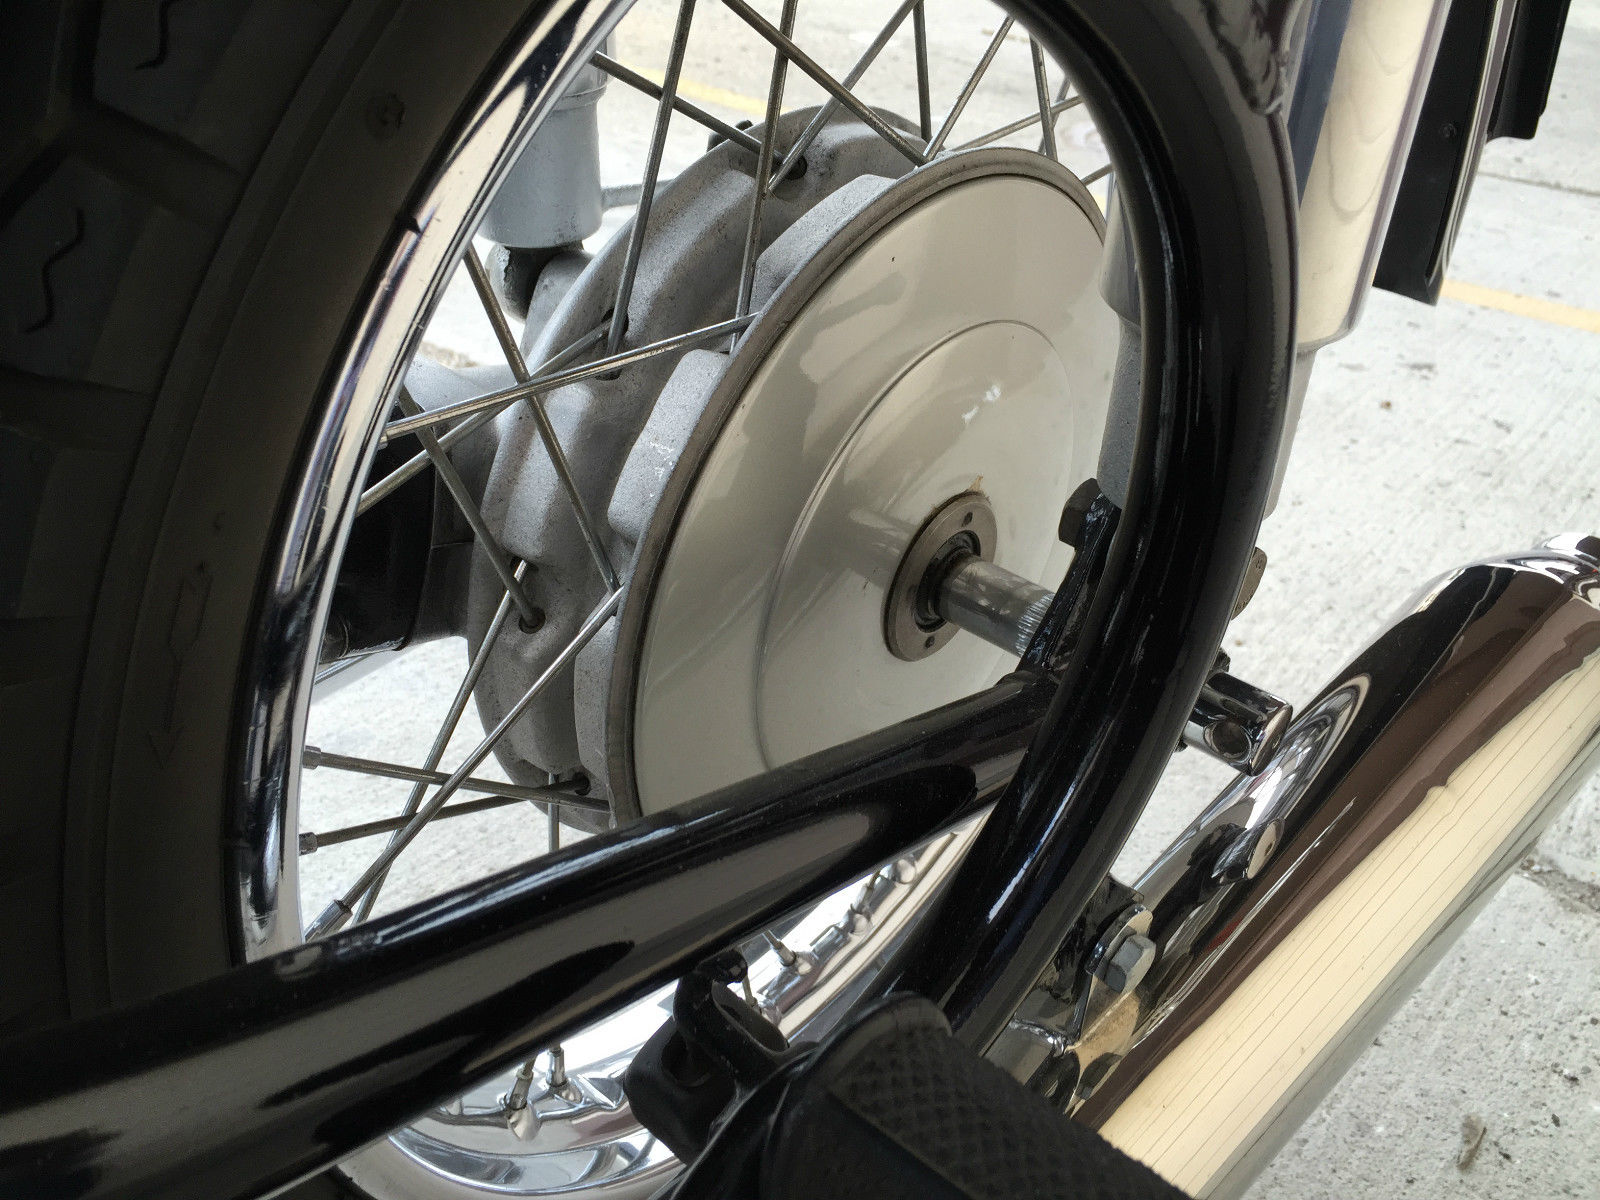 BMW R60/2 - 1965 - Frame, Rear Wheel, Rear Footrest and Exhaust.